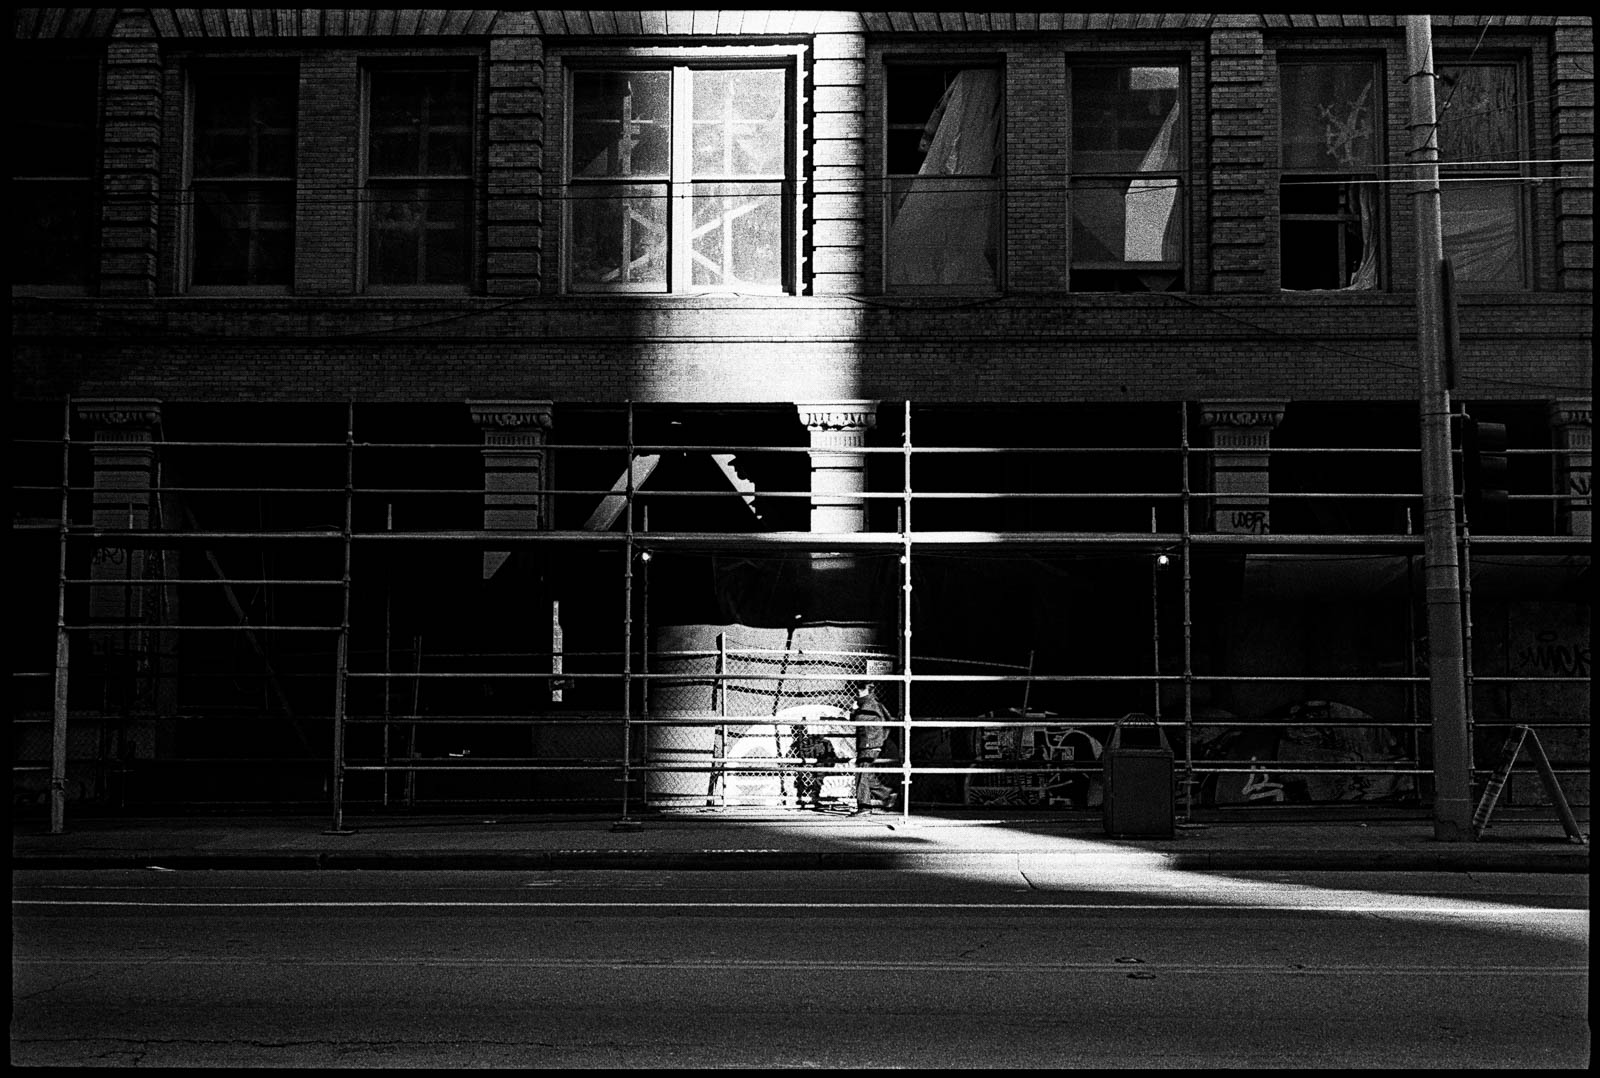 #0001_15 - Mission Street. San Francisco, 2003.